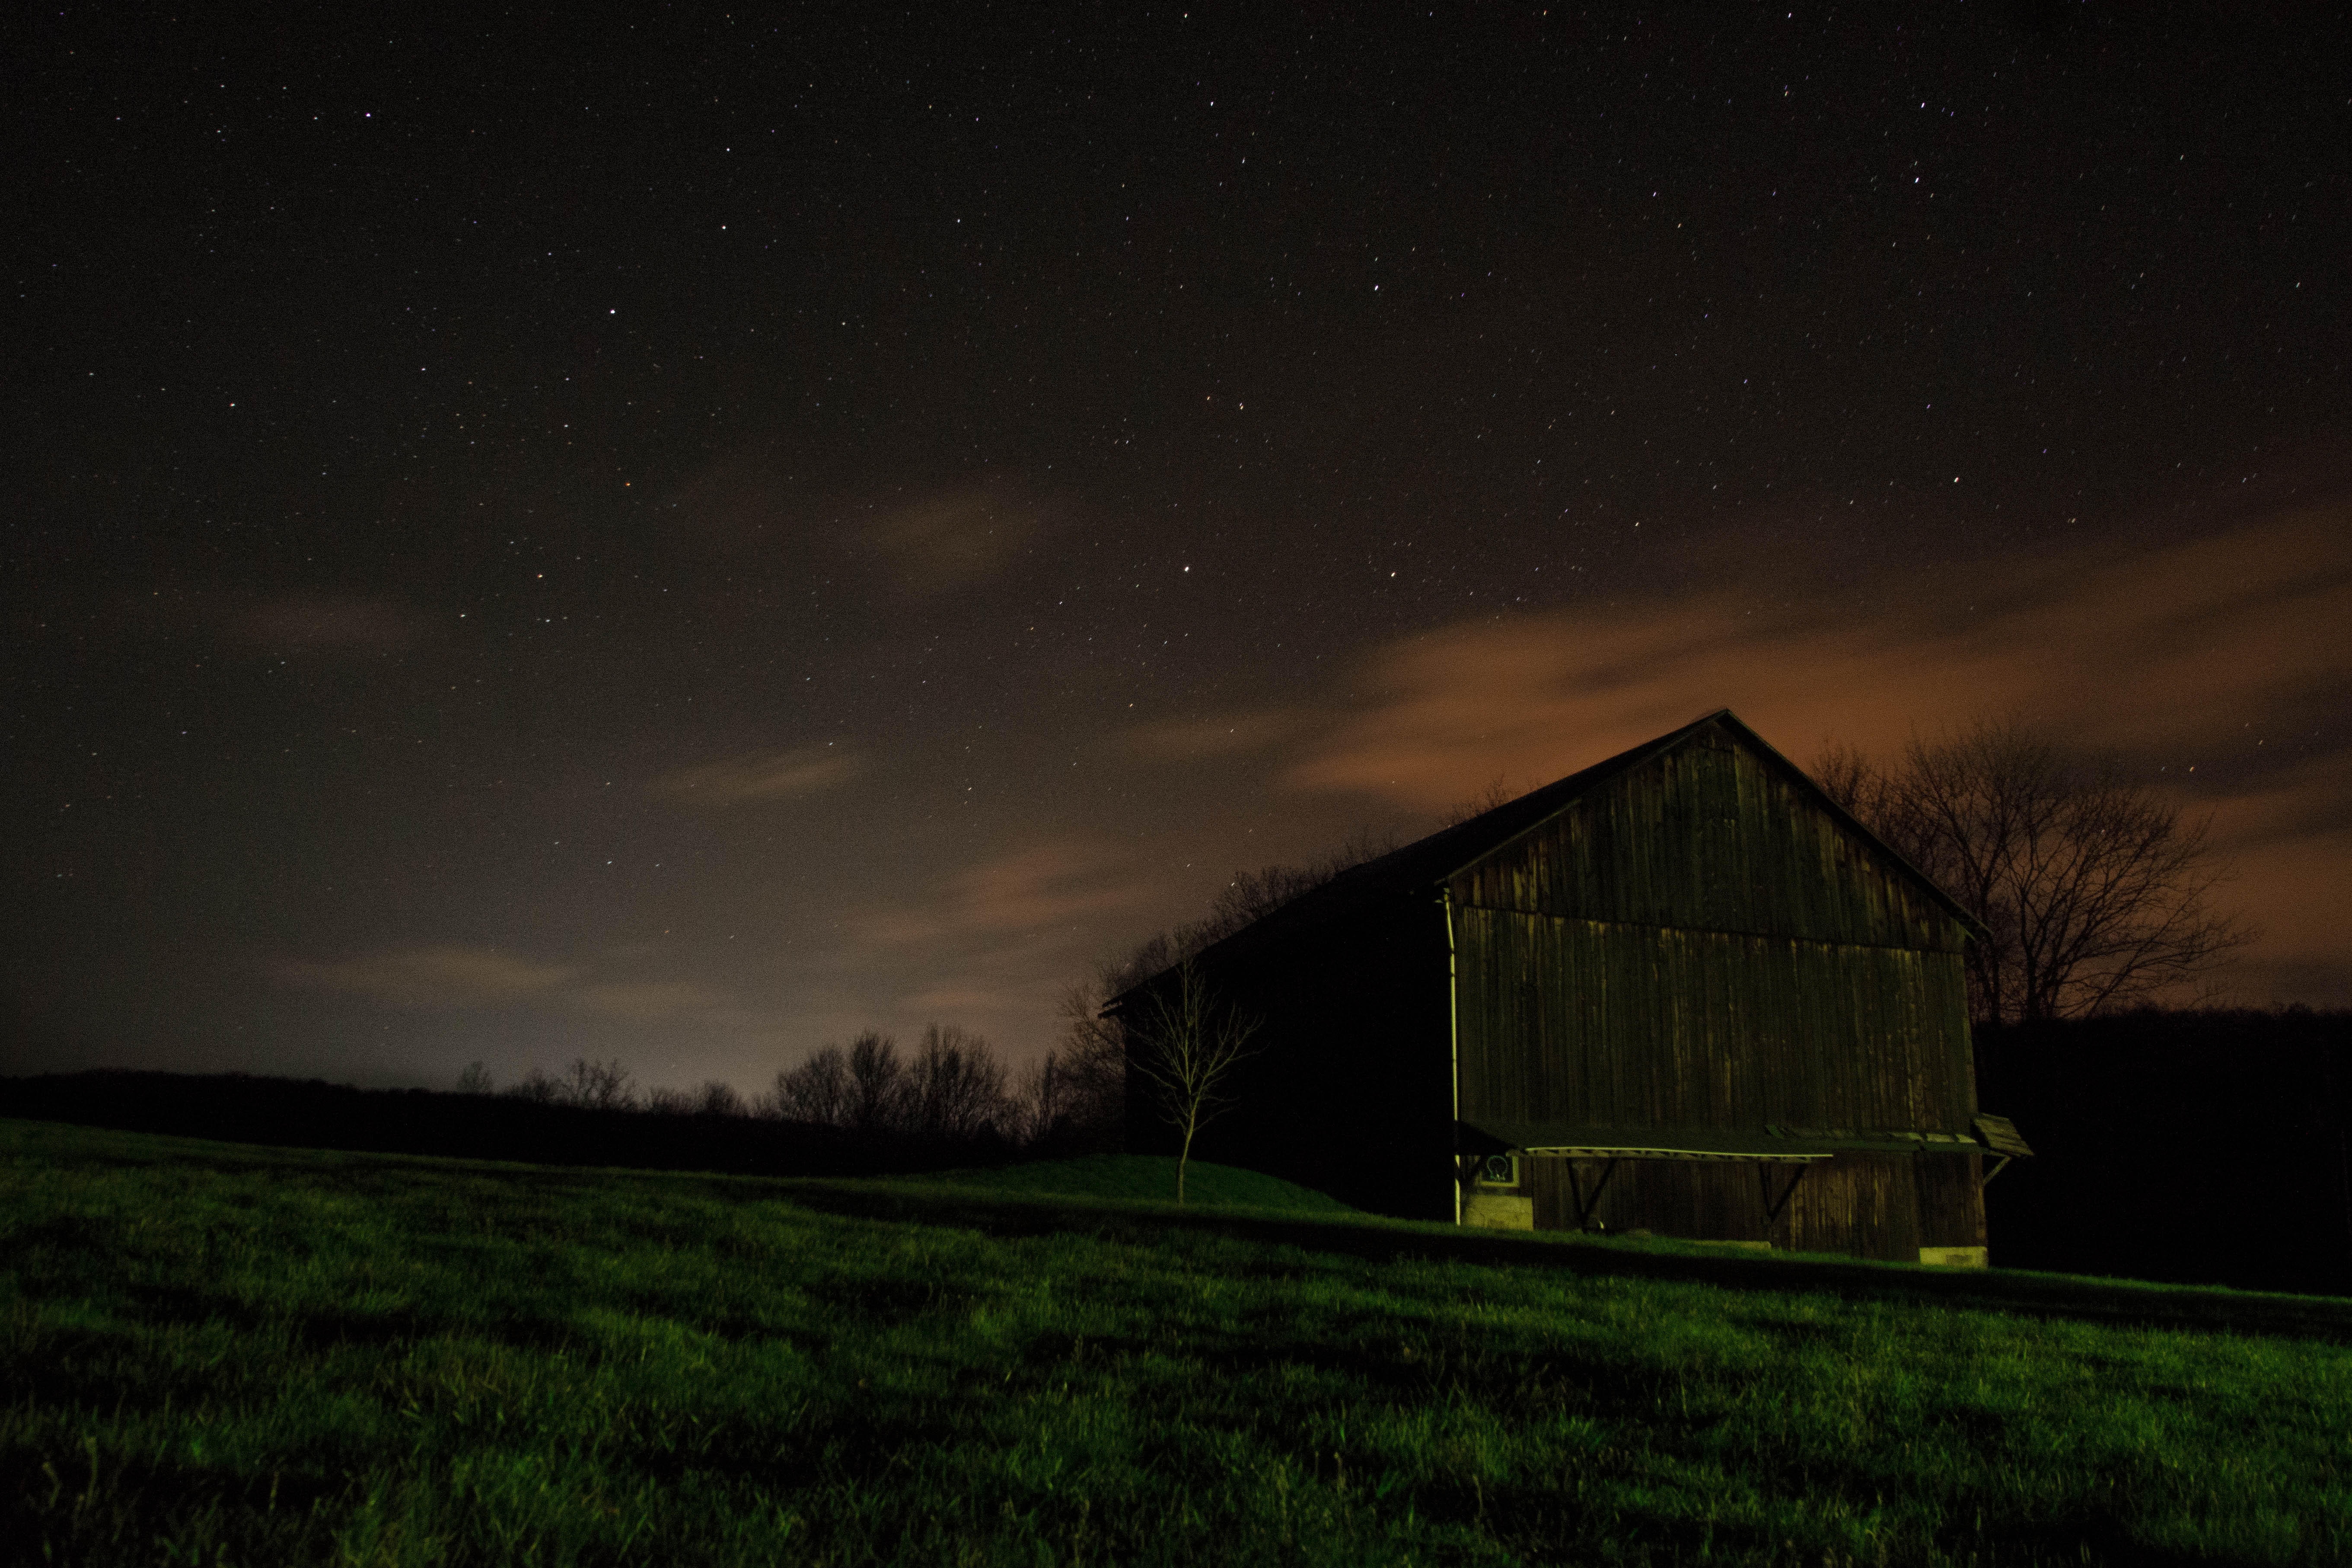 Farm house at night under sky filled with stars photo